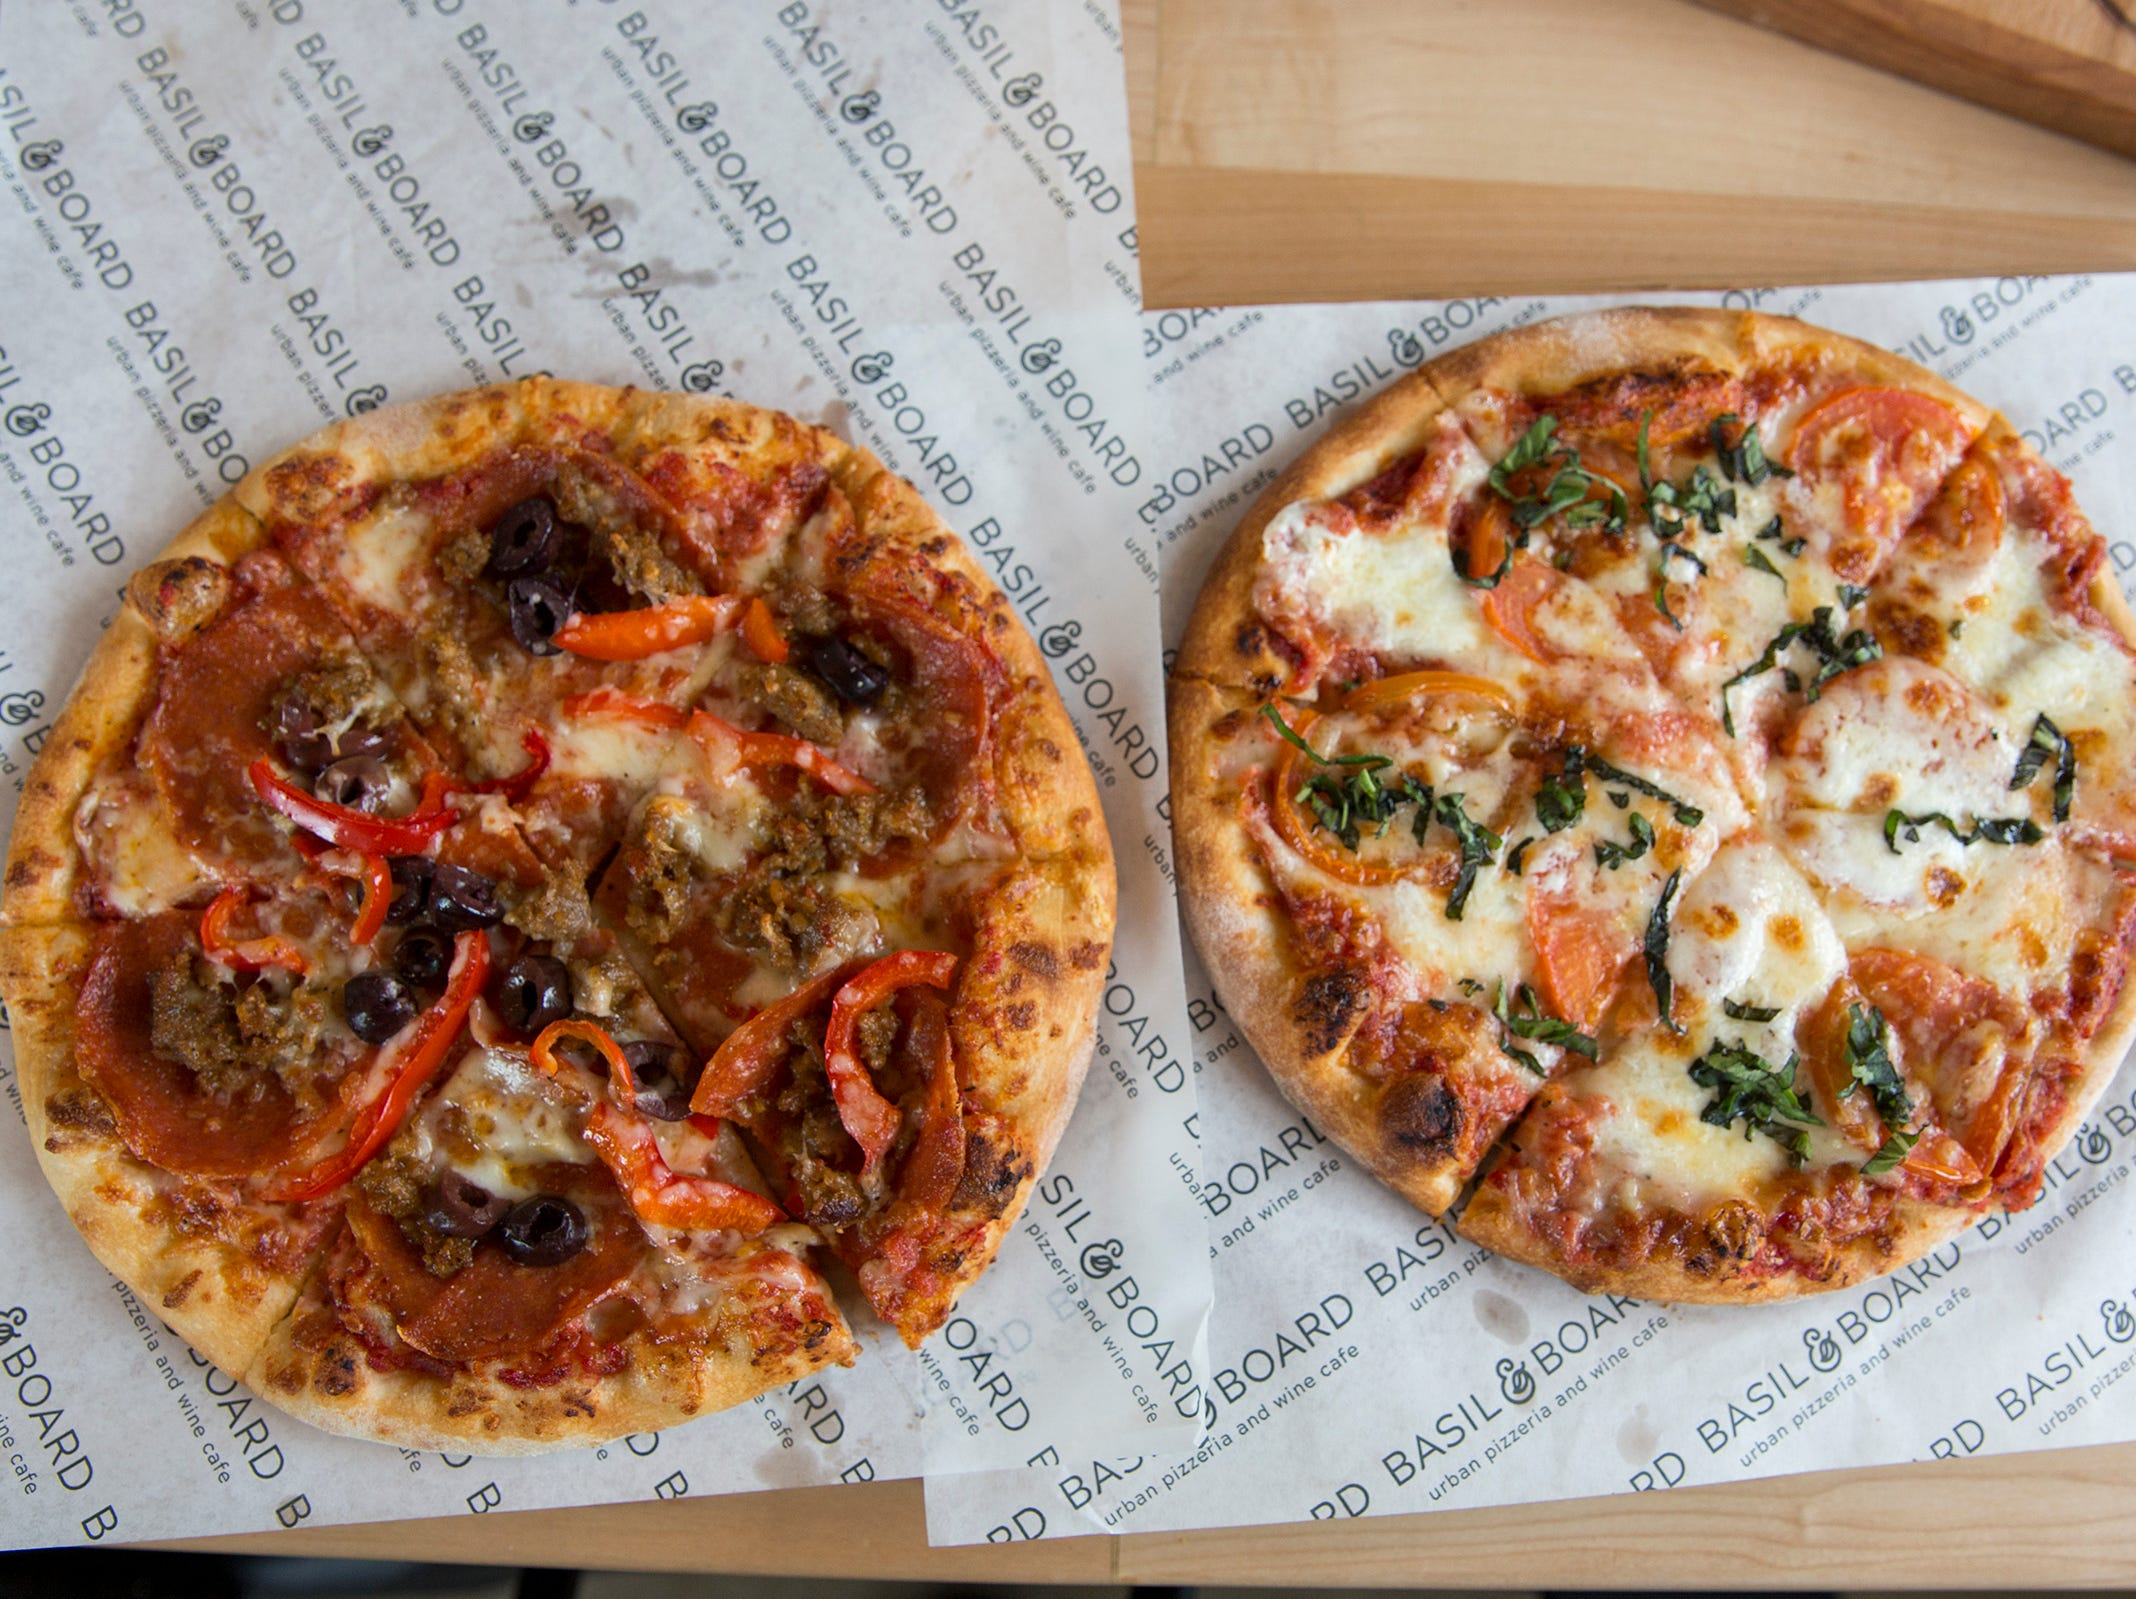 Two individual sized 8 inch pizzas from the lunch menu at Basil & Board are pictured in Salem on Tuesday, Feb. 26, 2019.